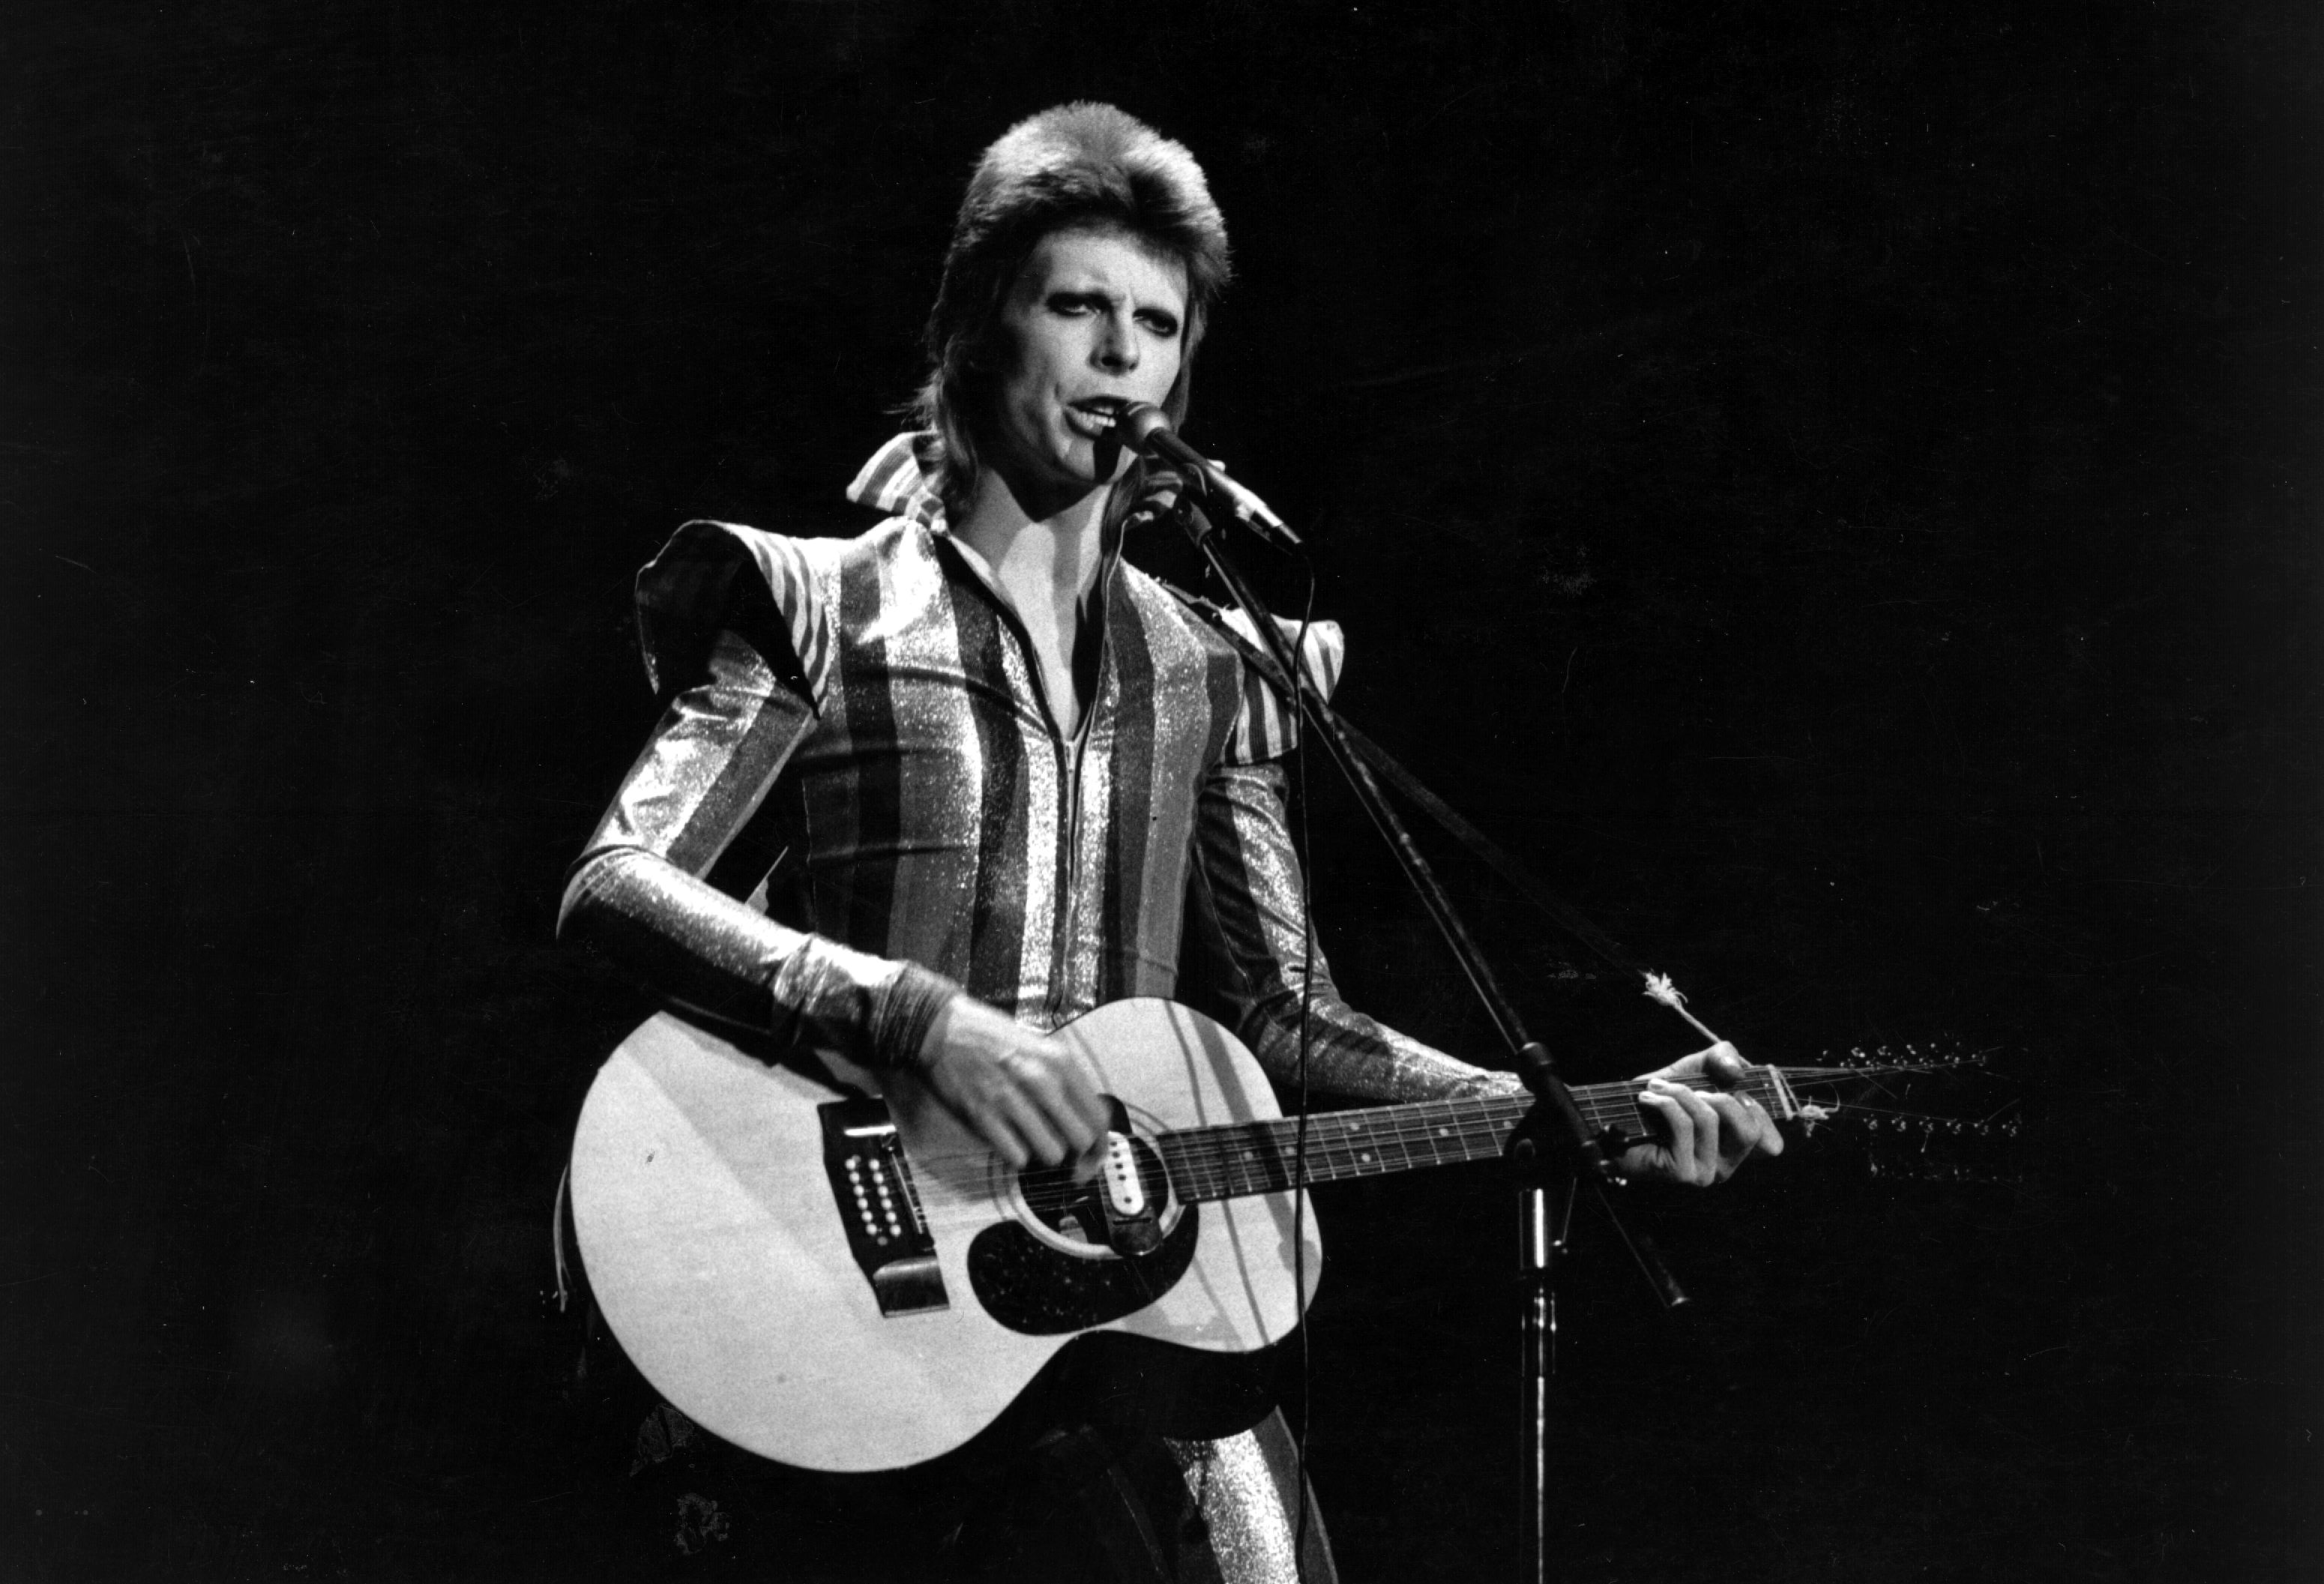 David Bowie performs his final concert as Ziggy Stardust at the Hammersmith Odeon, London on July 3, 1973.